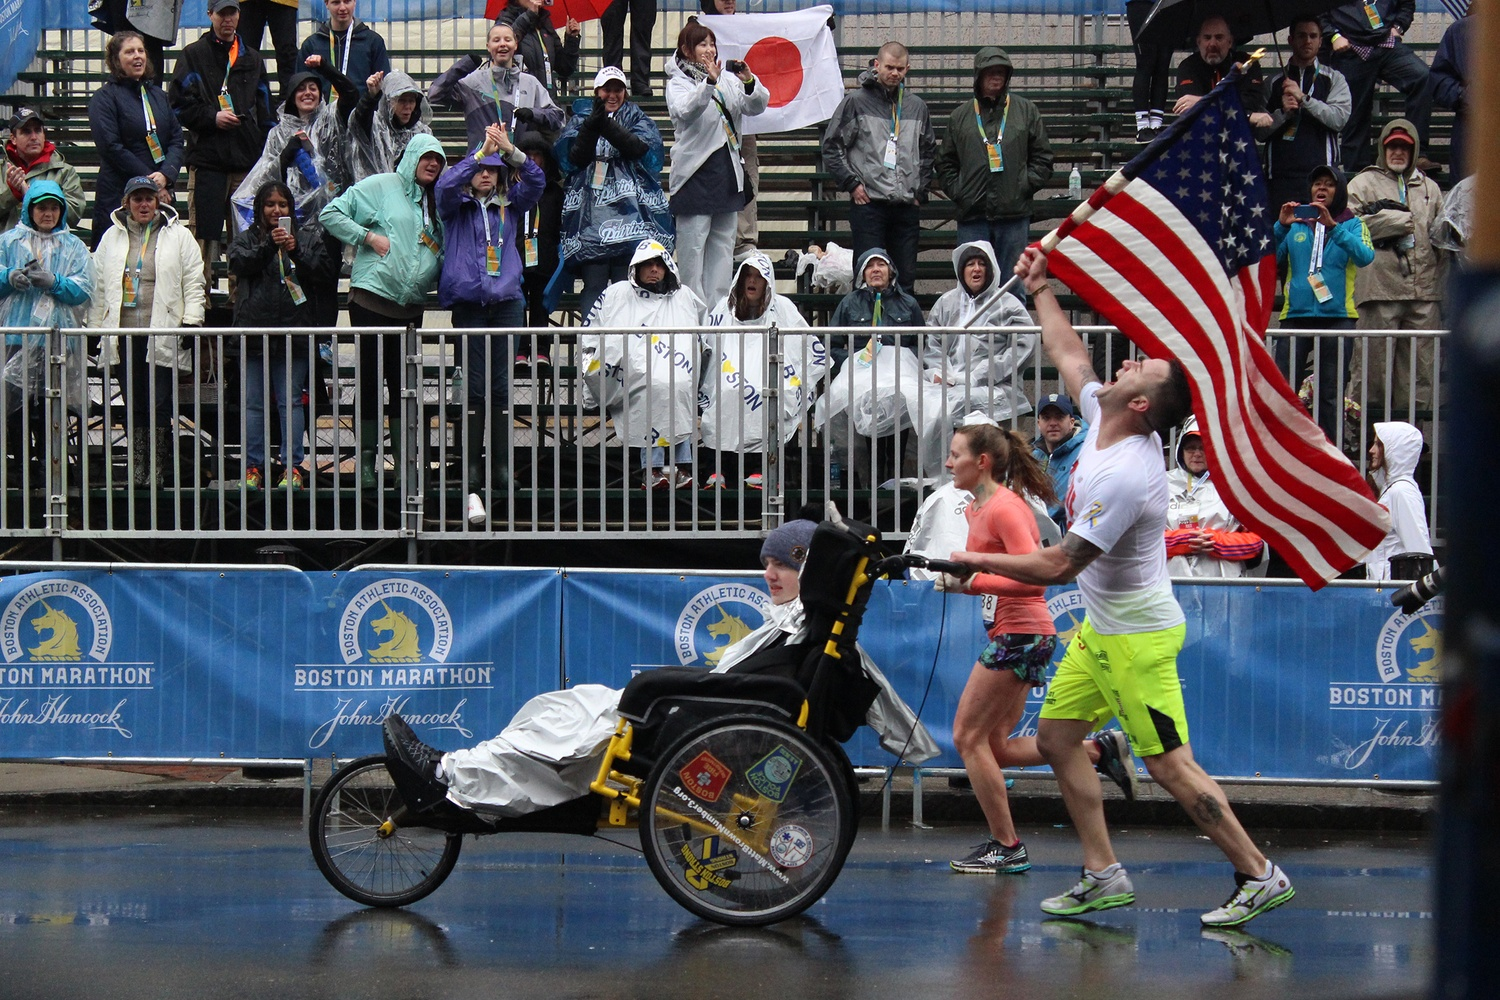 Former Army Ranger Lucas Carr, right, and Stonehill College student Matt Brown, who has been a quadriplegic since he was 15, celebrate as they near the end of the race. The two have run multiple marathons together for charity since 2012.